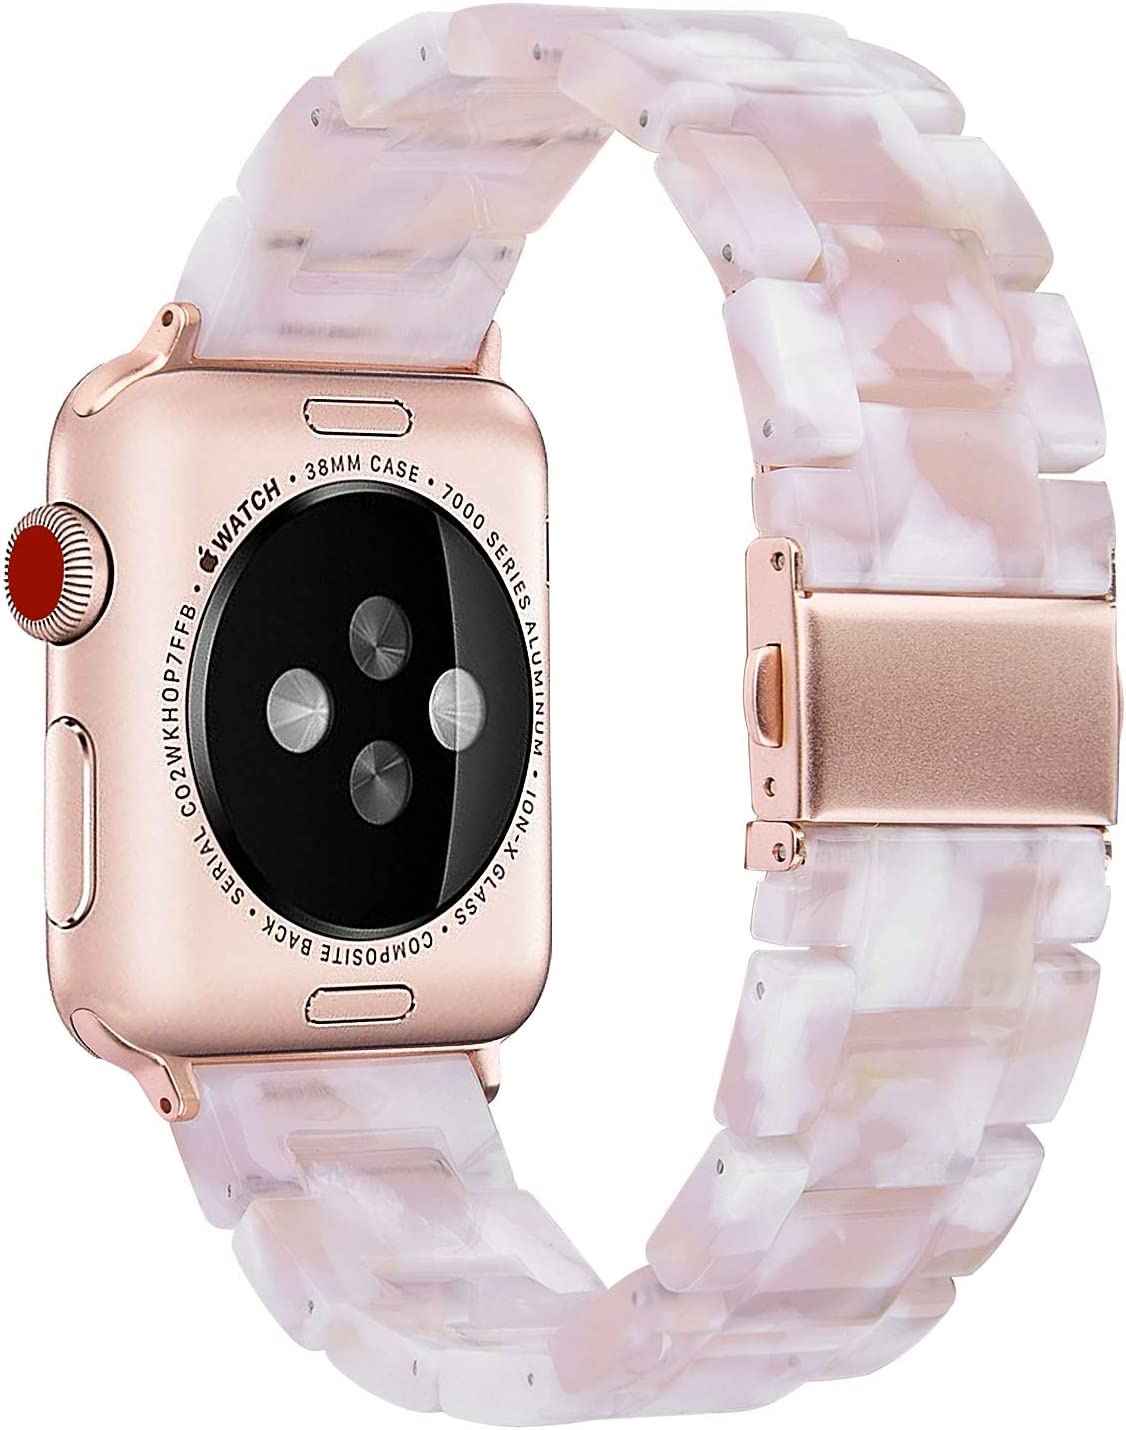 V-MORO Resin Strap Compatible with Apple Watch Band 38mm 40mm Series 5/4/3/2/1 Women Men with Stainless Steel Buckle, Apple iWatch Replacement Wristband Bracelet ( Floral Pink, 38mm)